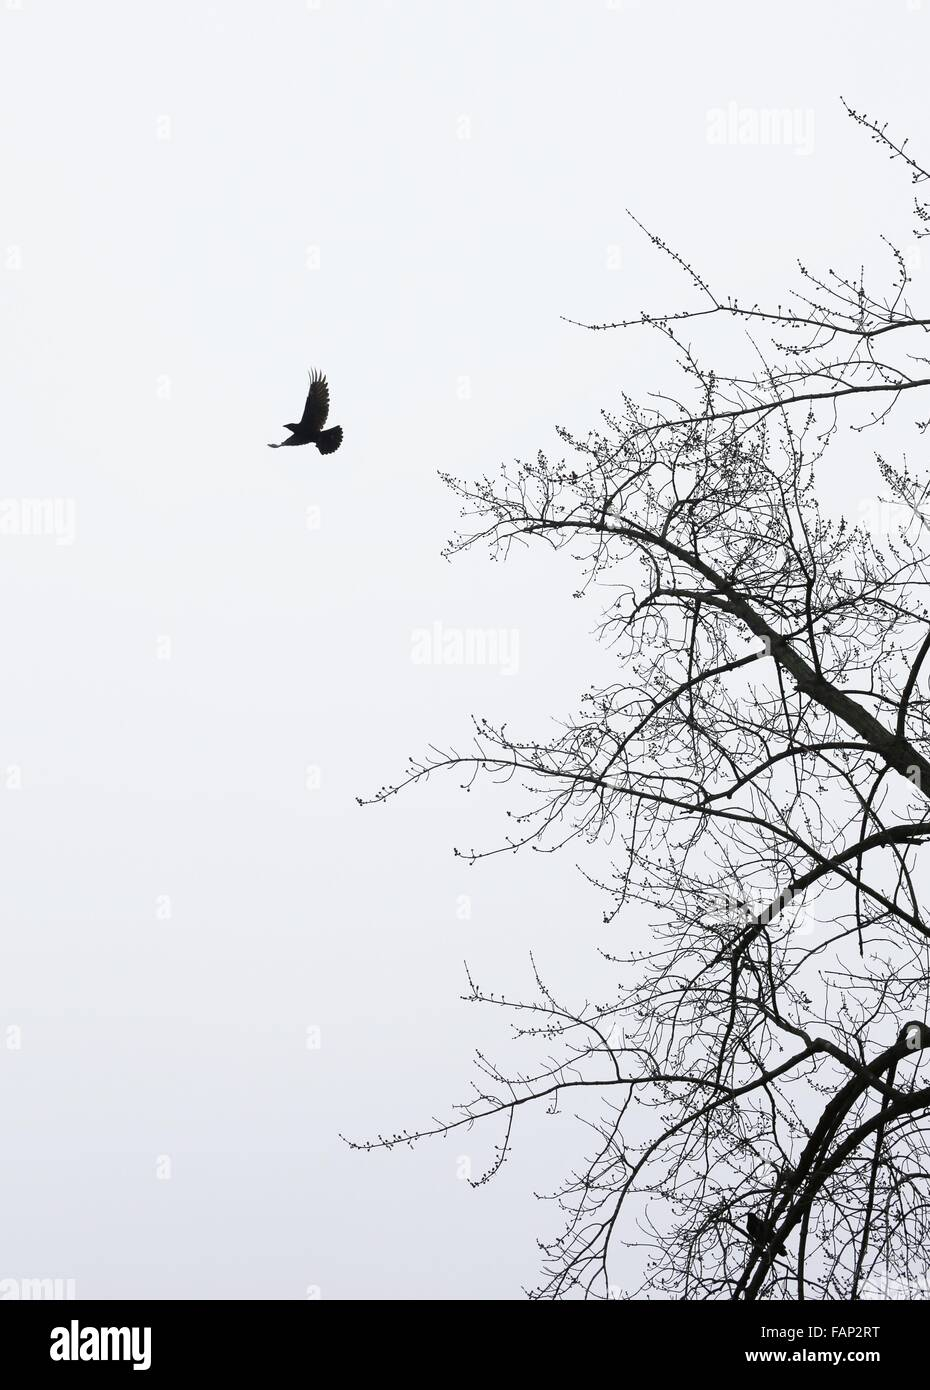 A crow flying from a bare tree. - Stock Image